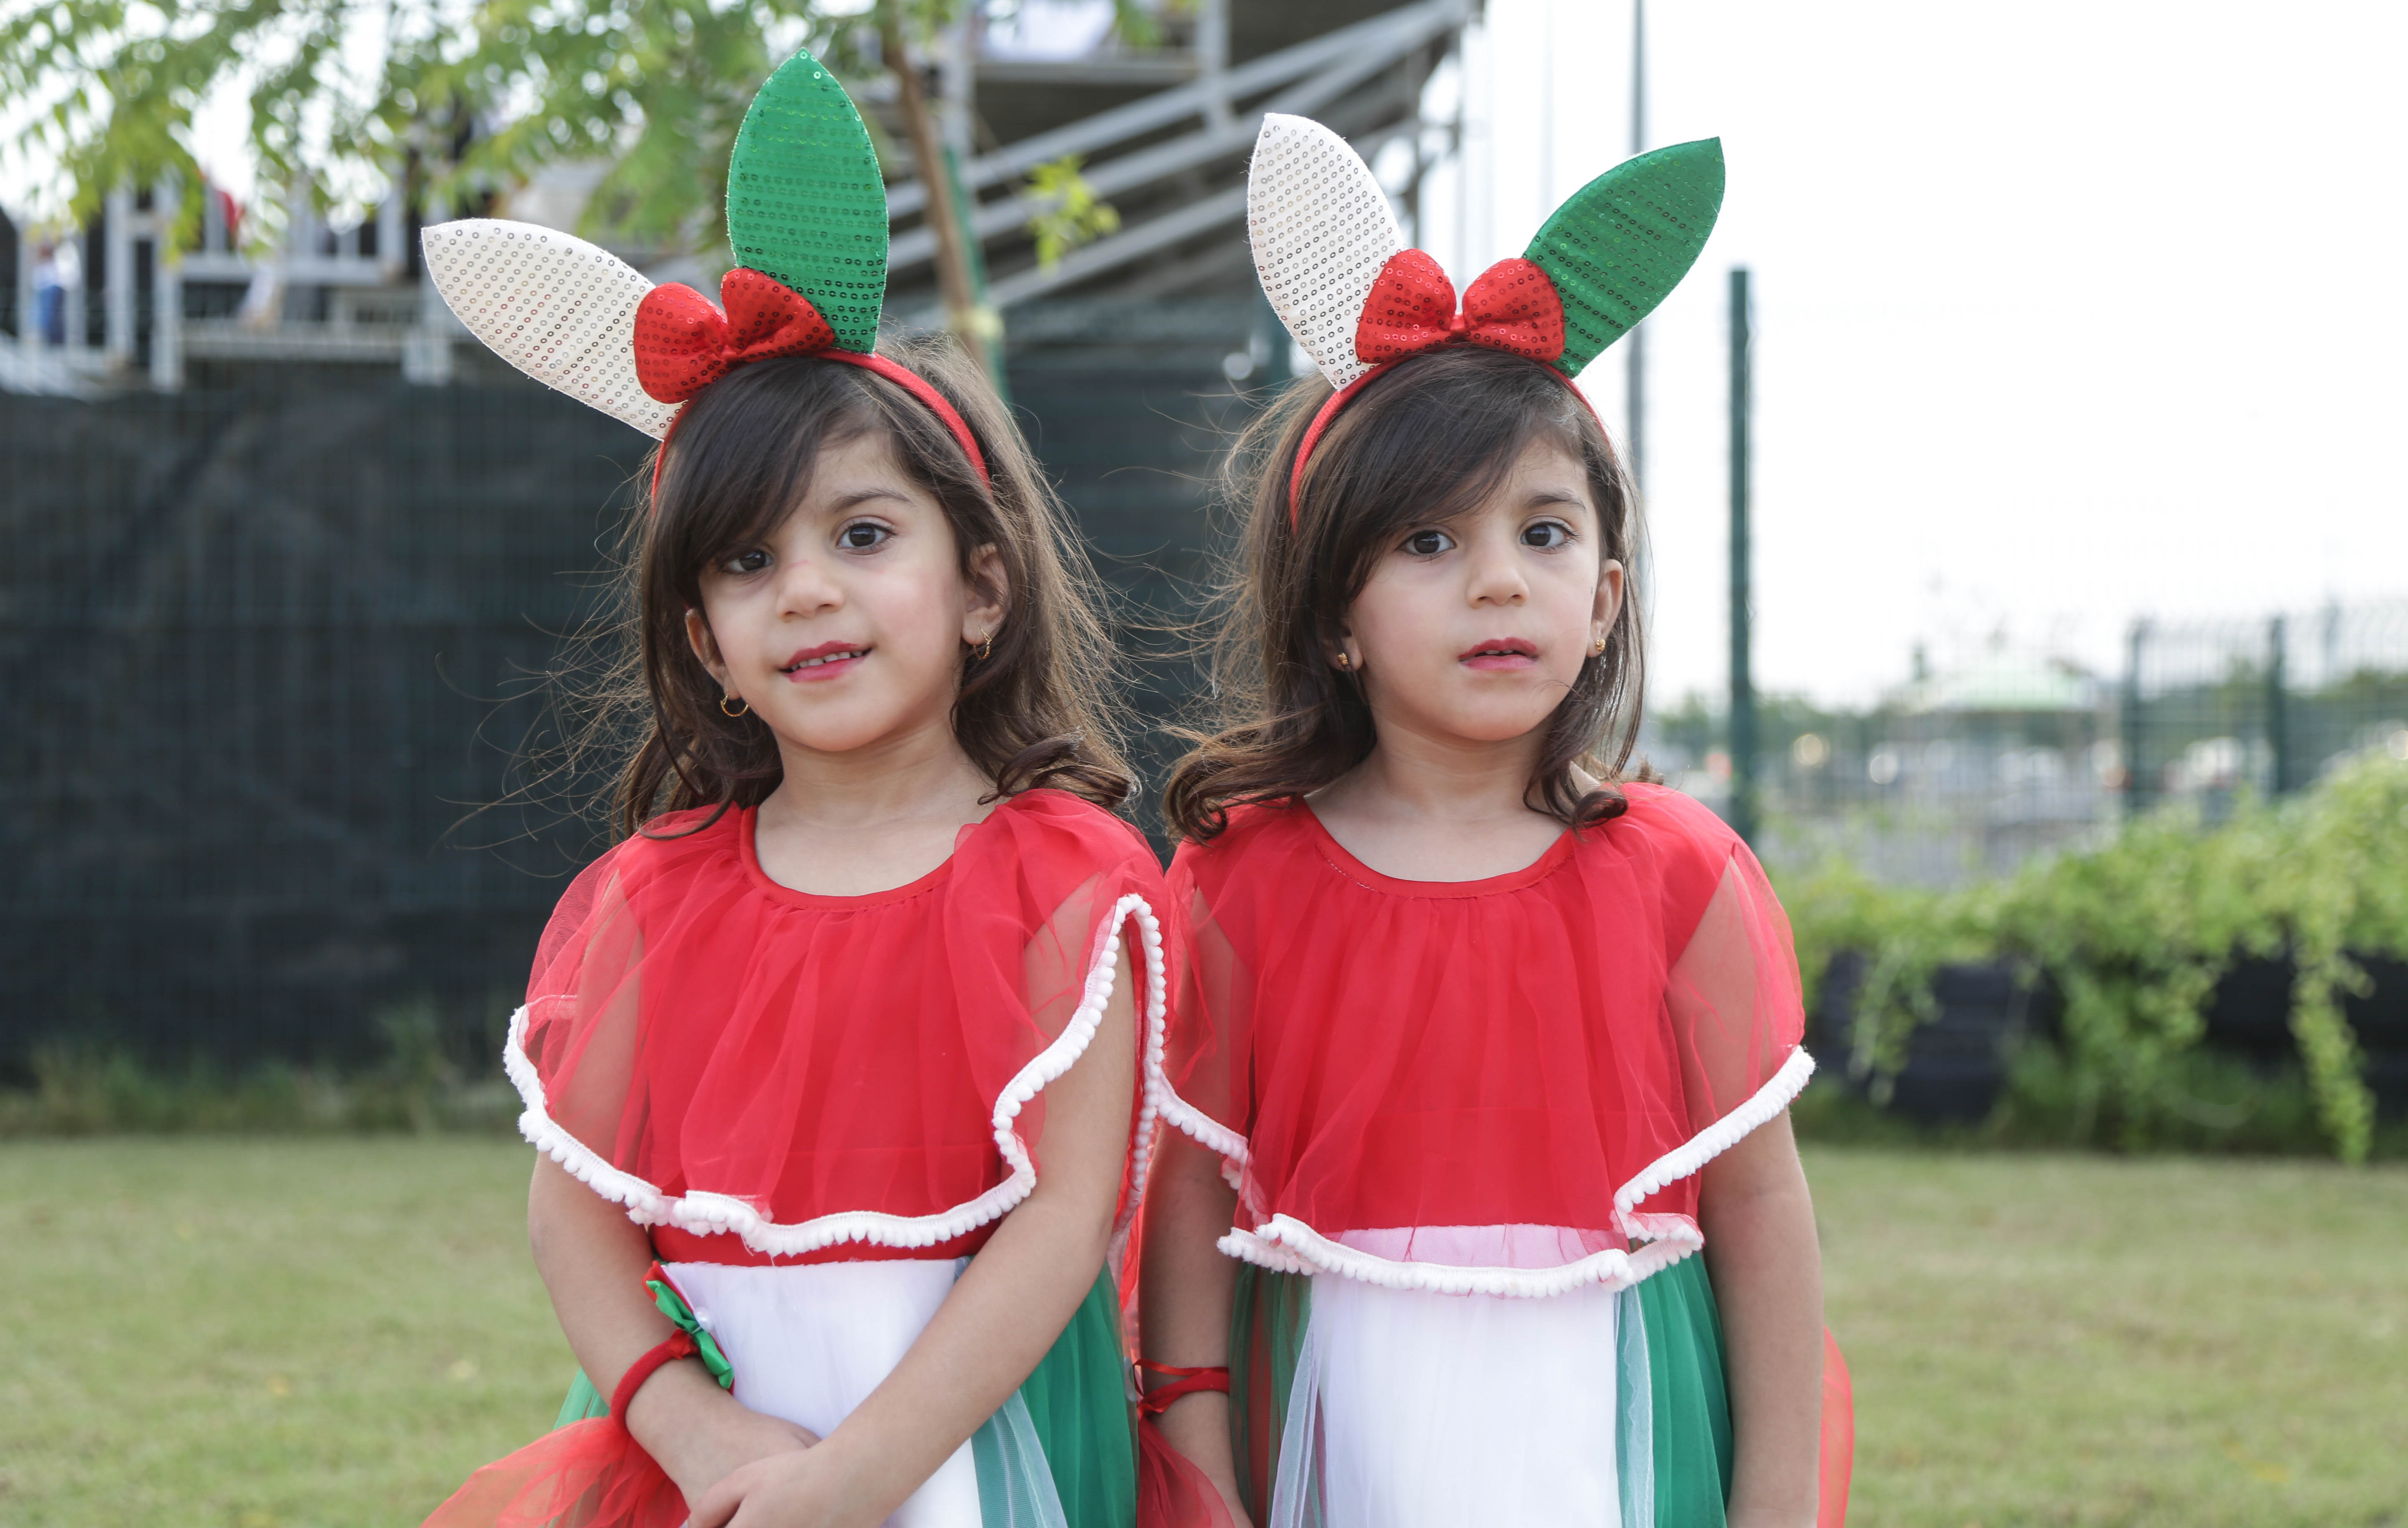 In pictures: Twins steal the show at multiple birth celebrations in Sultanate